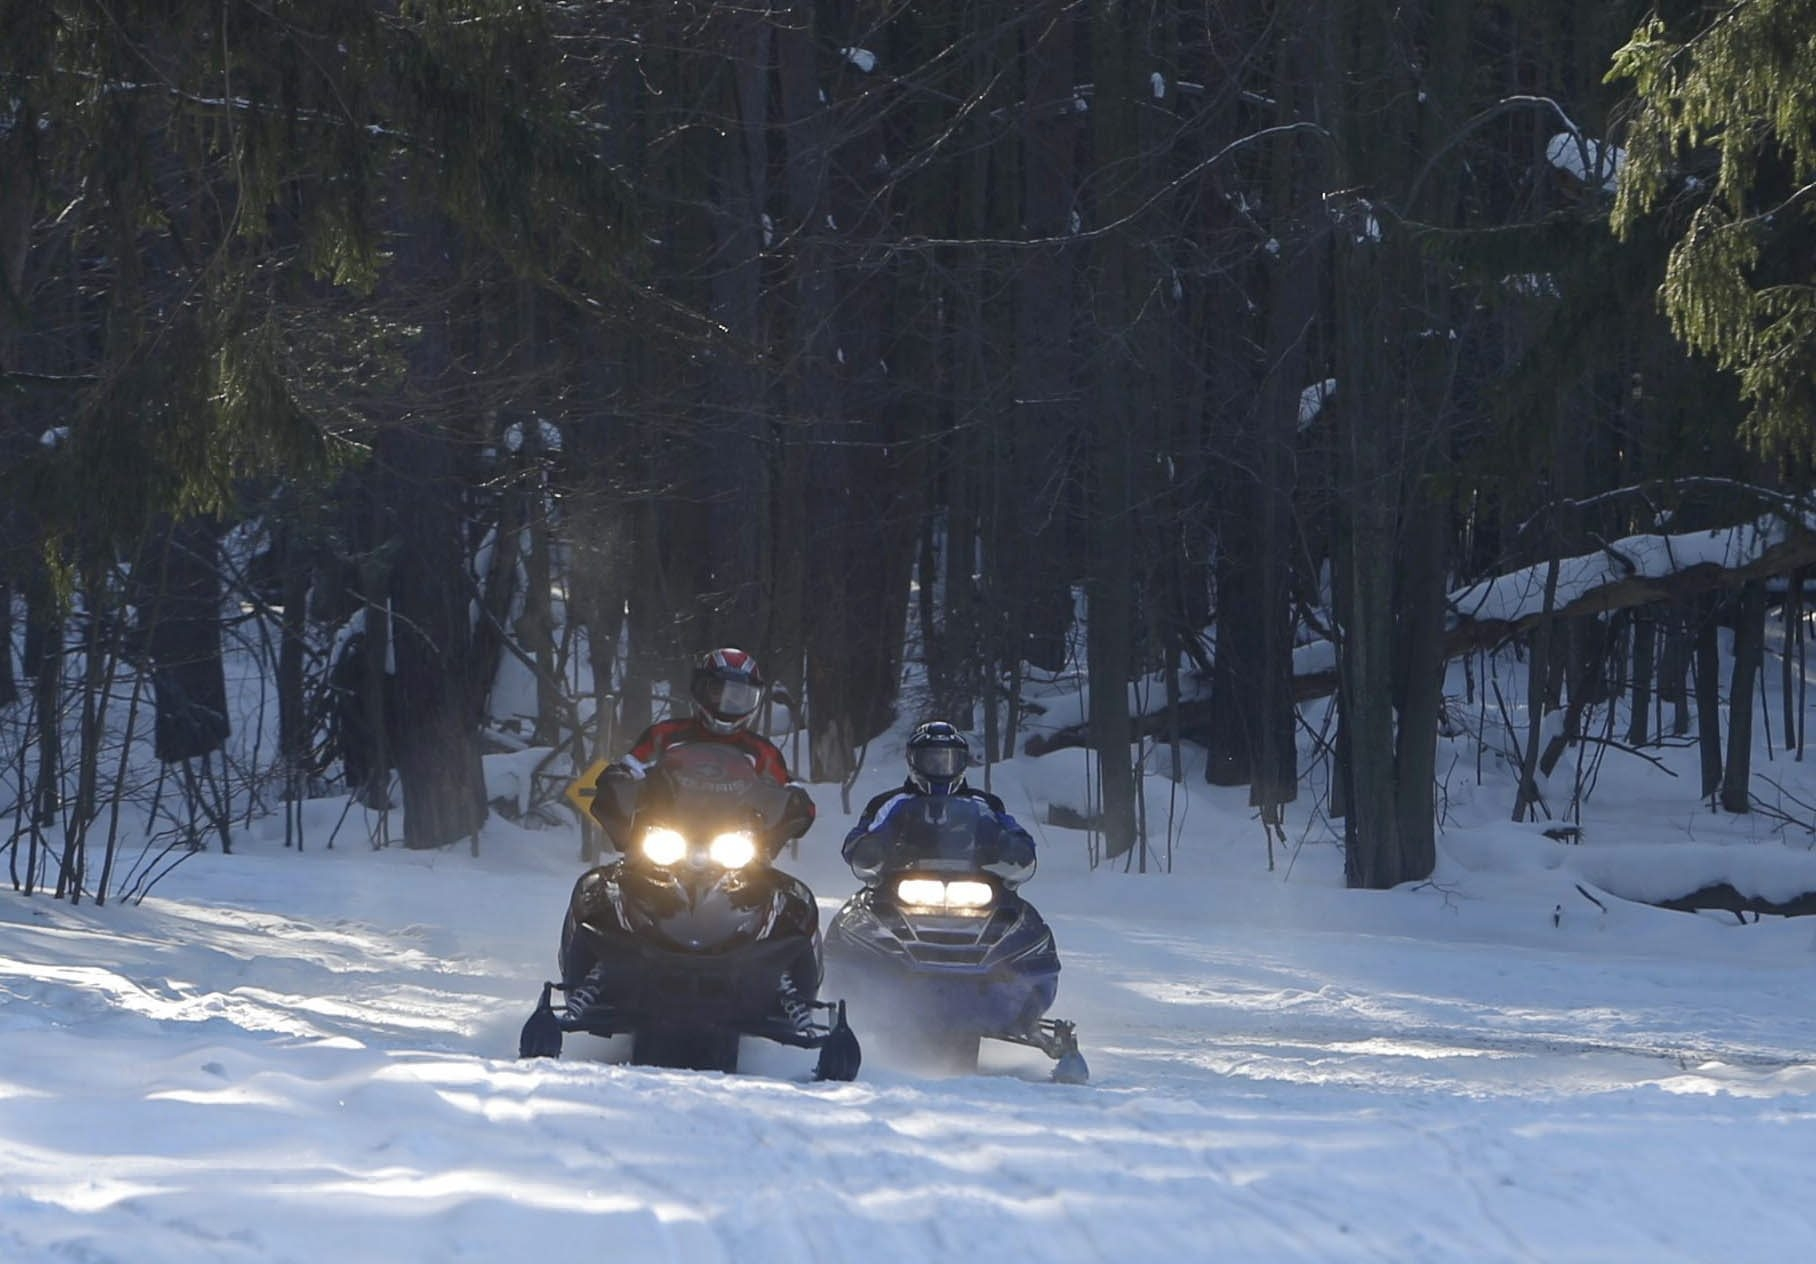 Emery Park in South Wales has been a favorite destination for snowmobiler this winter.  (John Hickey/Buffalo News)